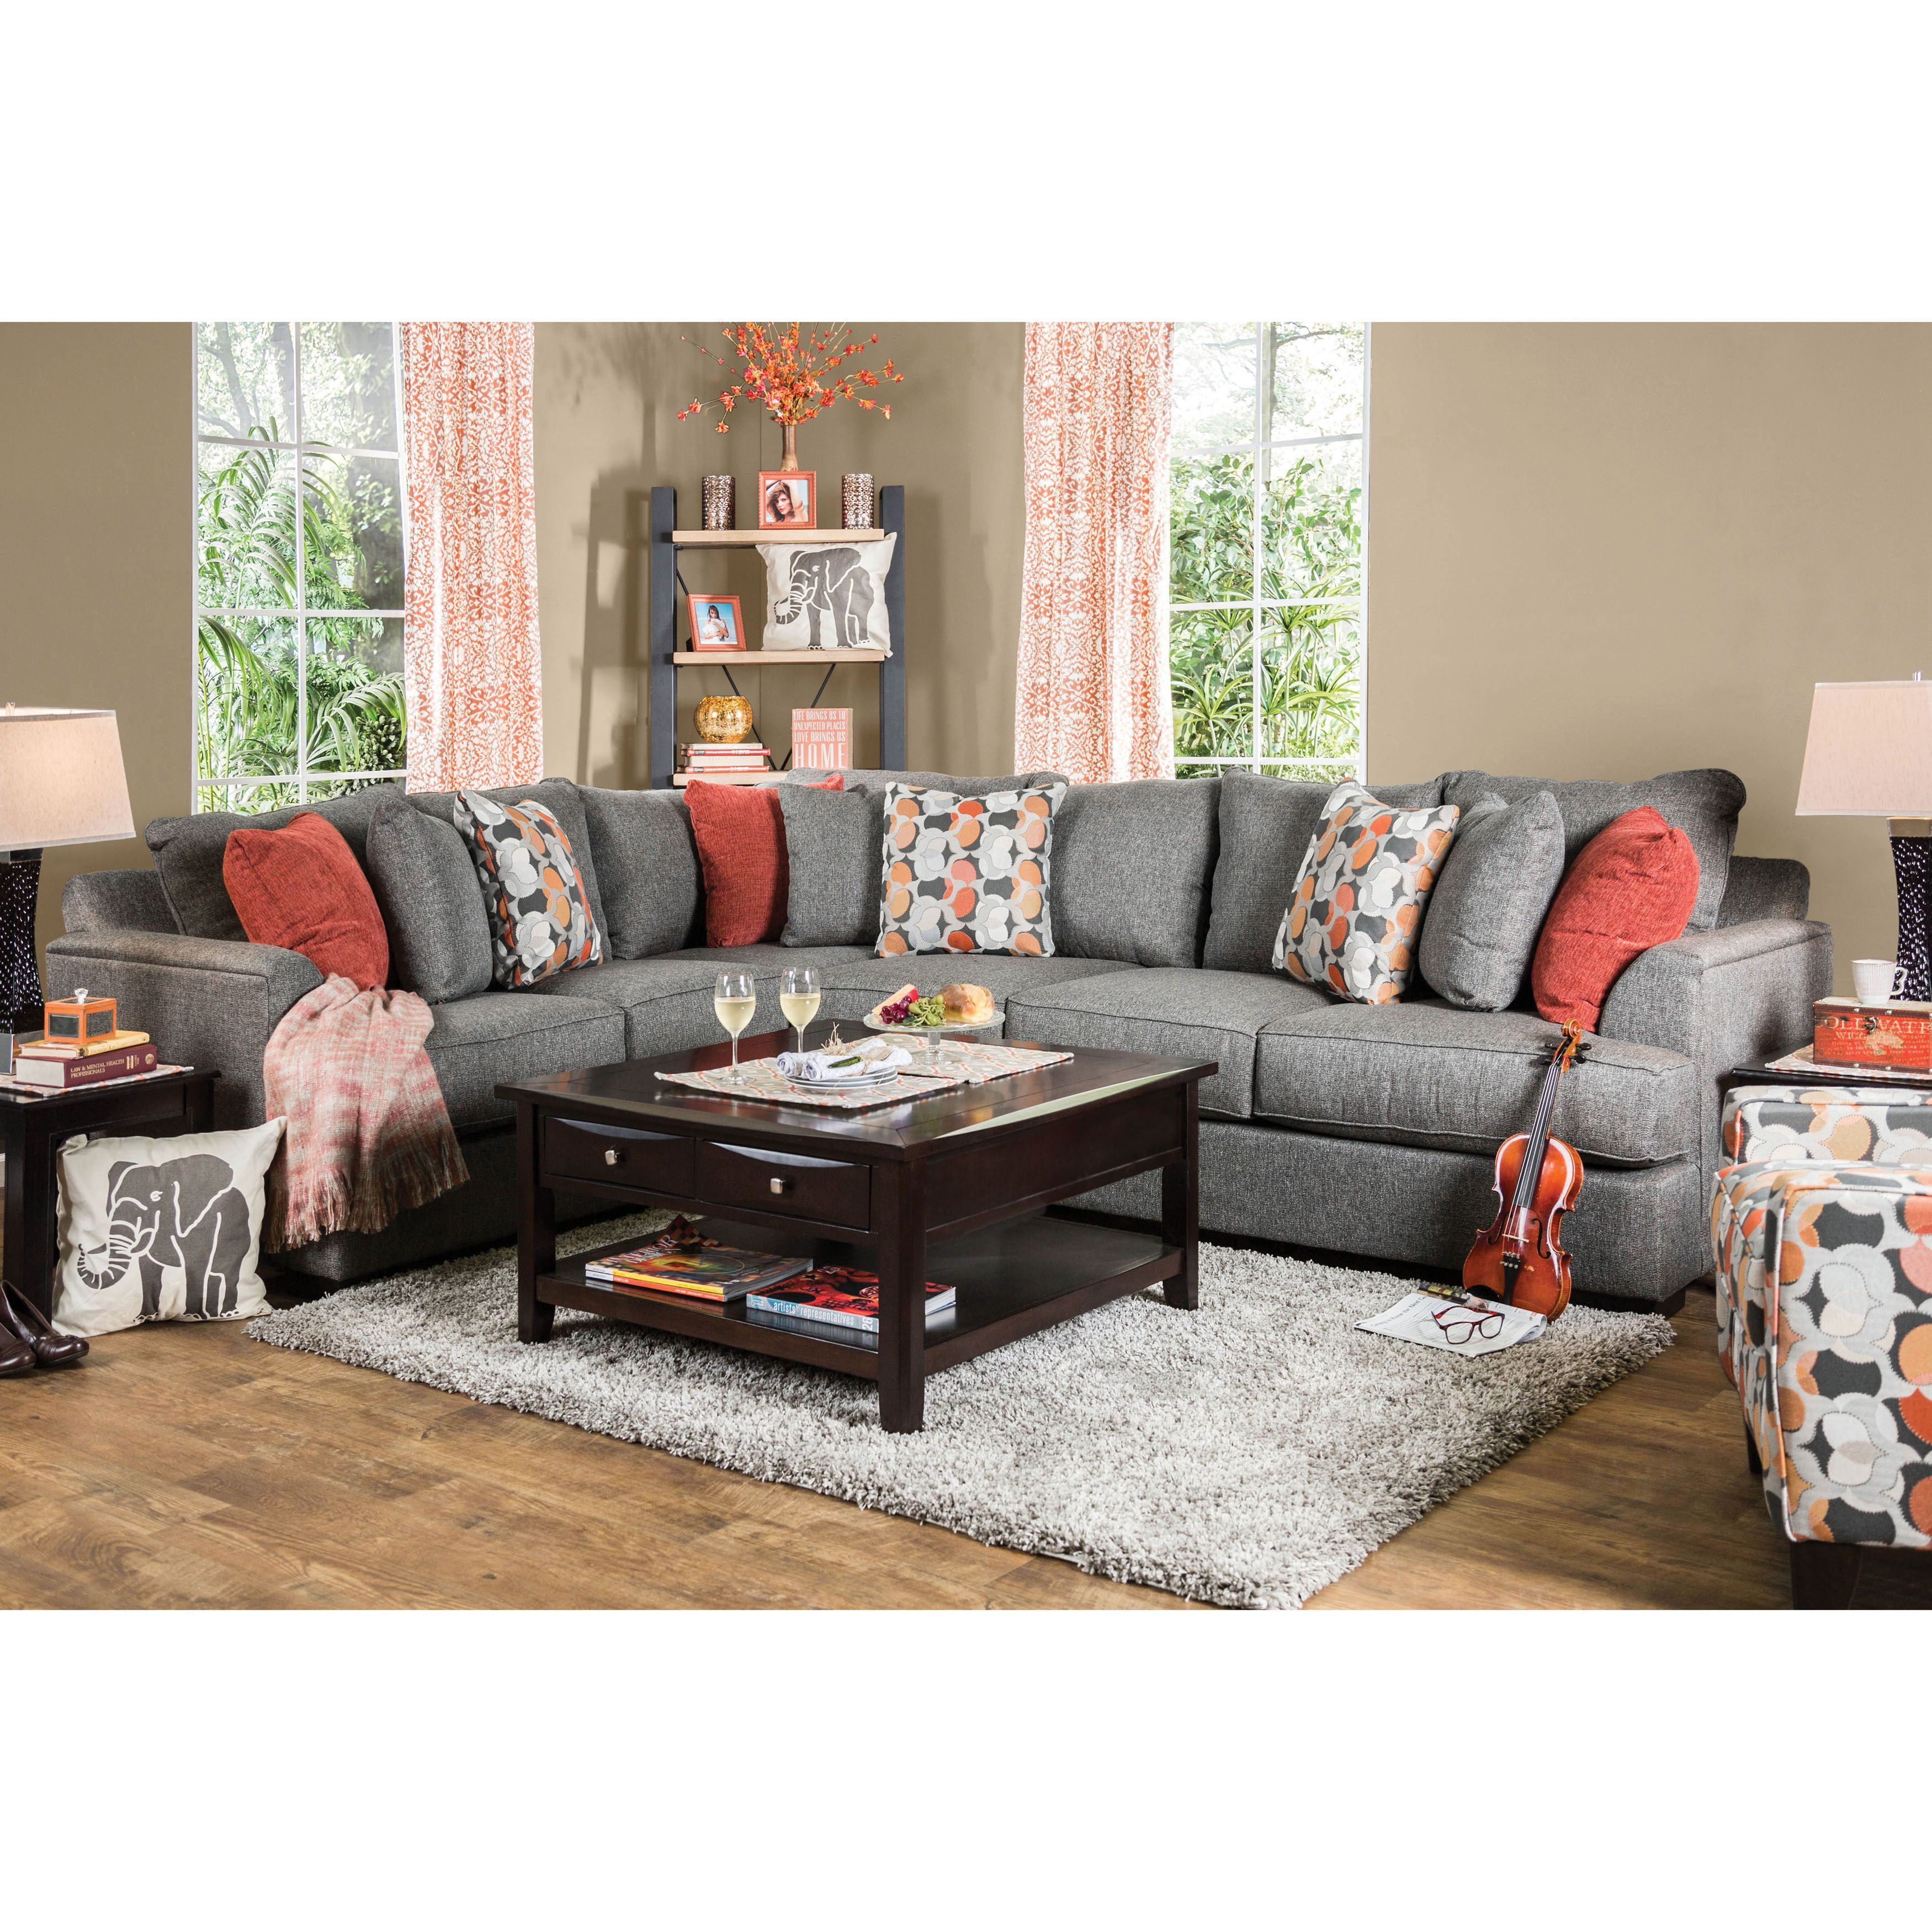 Chelsea Home Furniture SEC VB Corianne 2 Piece Sectional